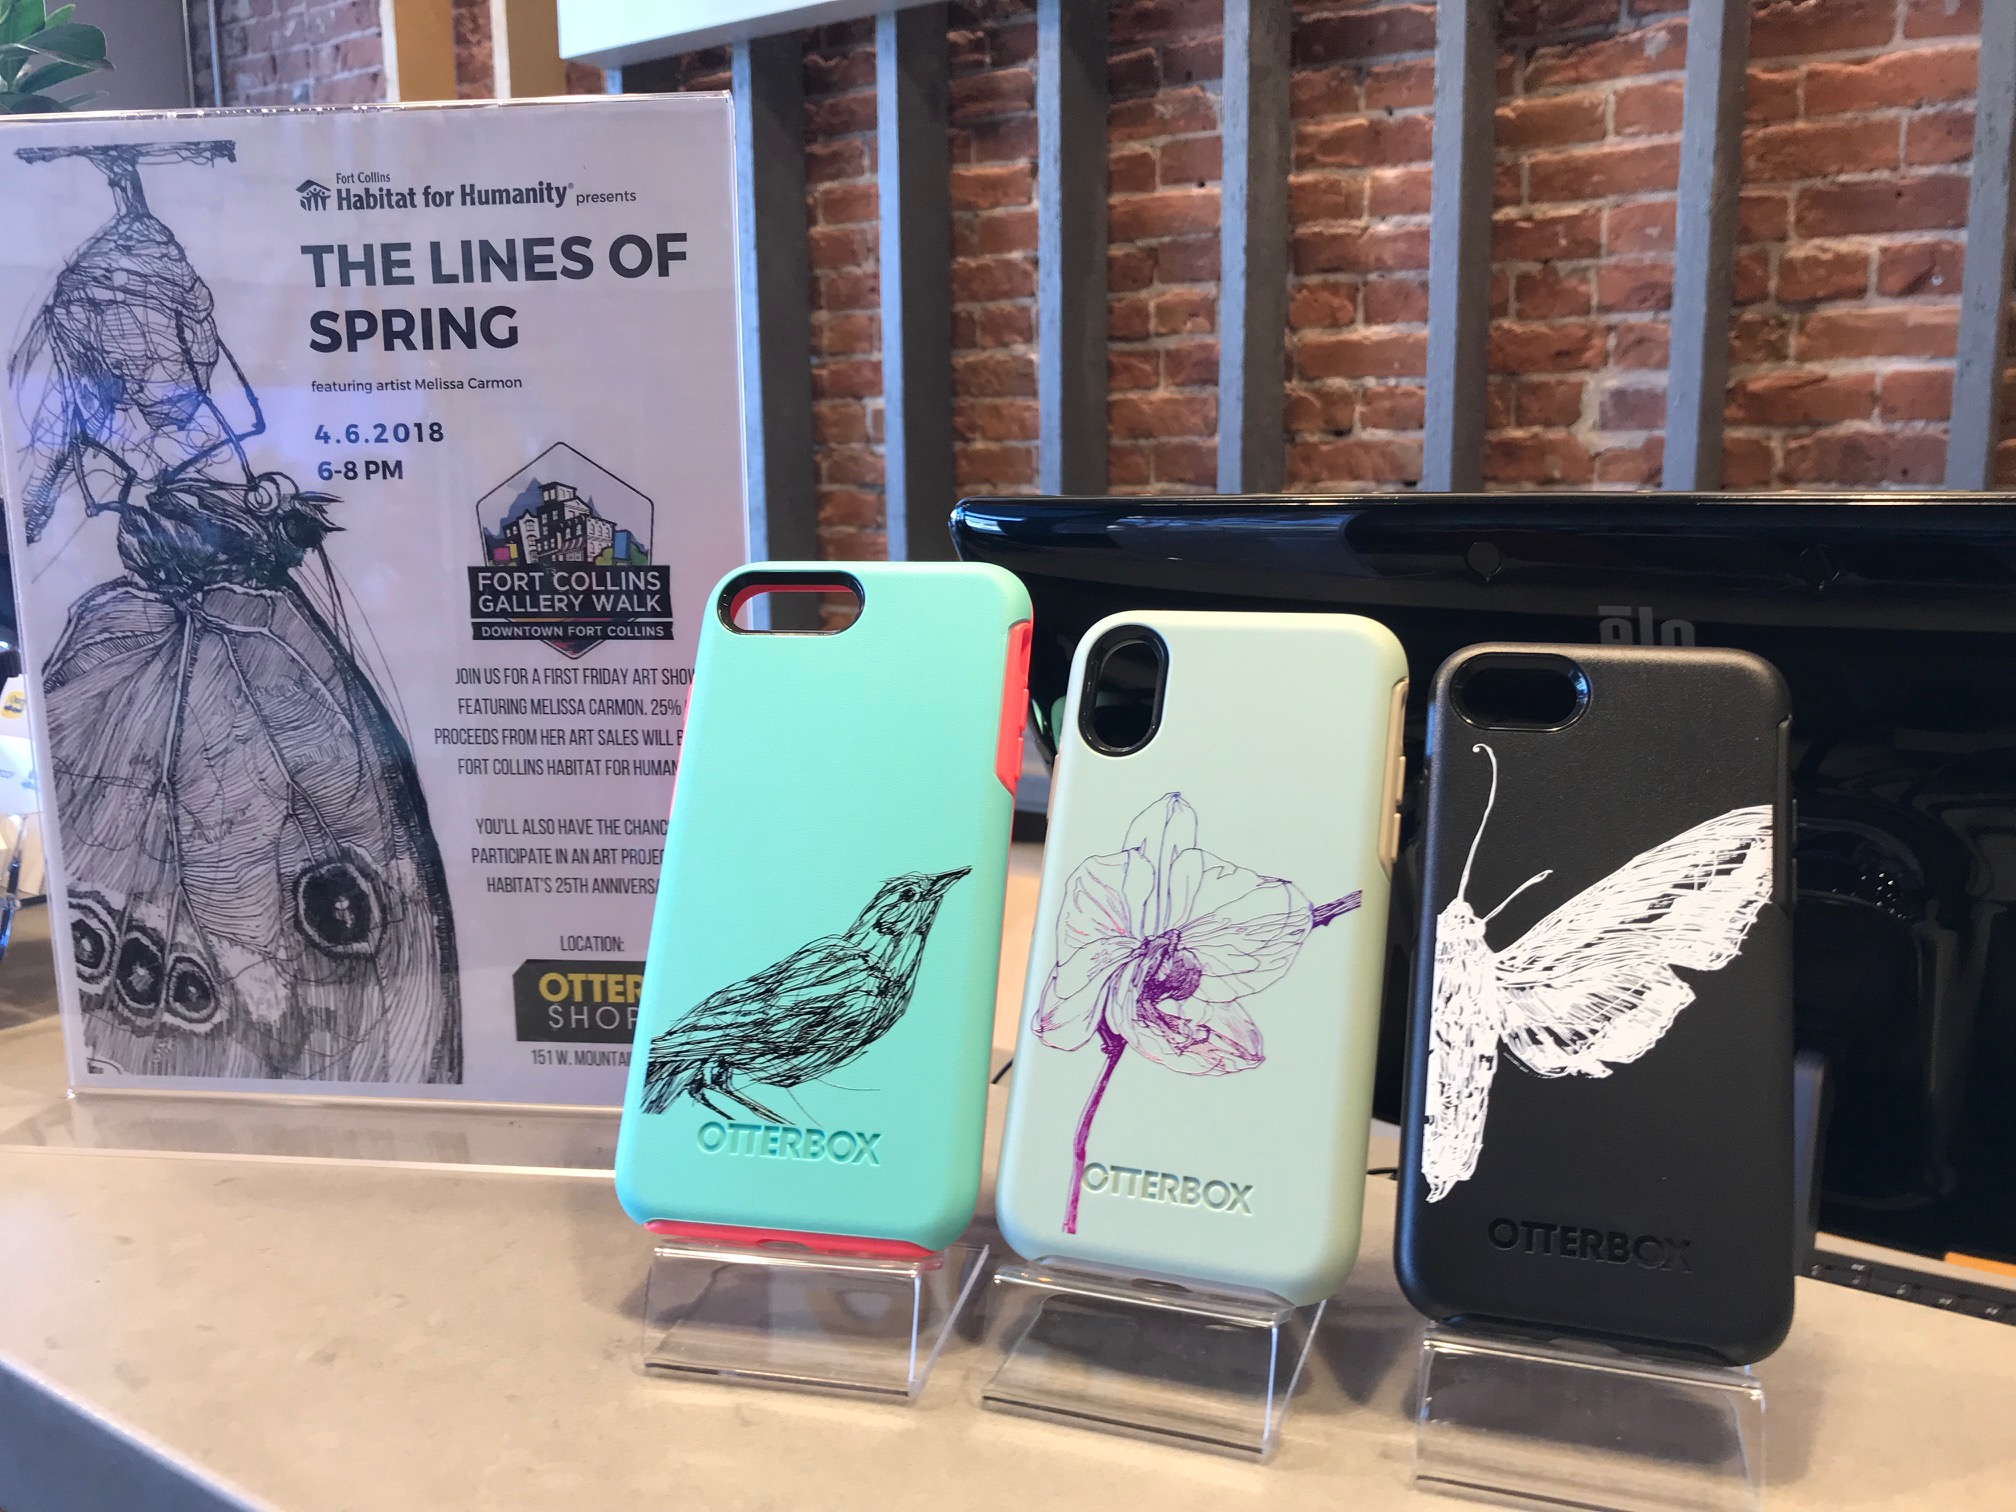 The Lines of Spring- Print show and art pop-up on April 6, 2018. Art by Melissa Carmon engraved on Otterbox phone cases